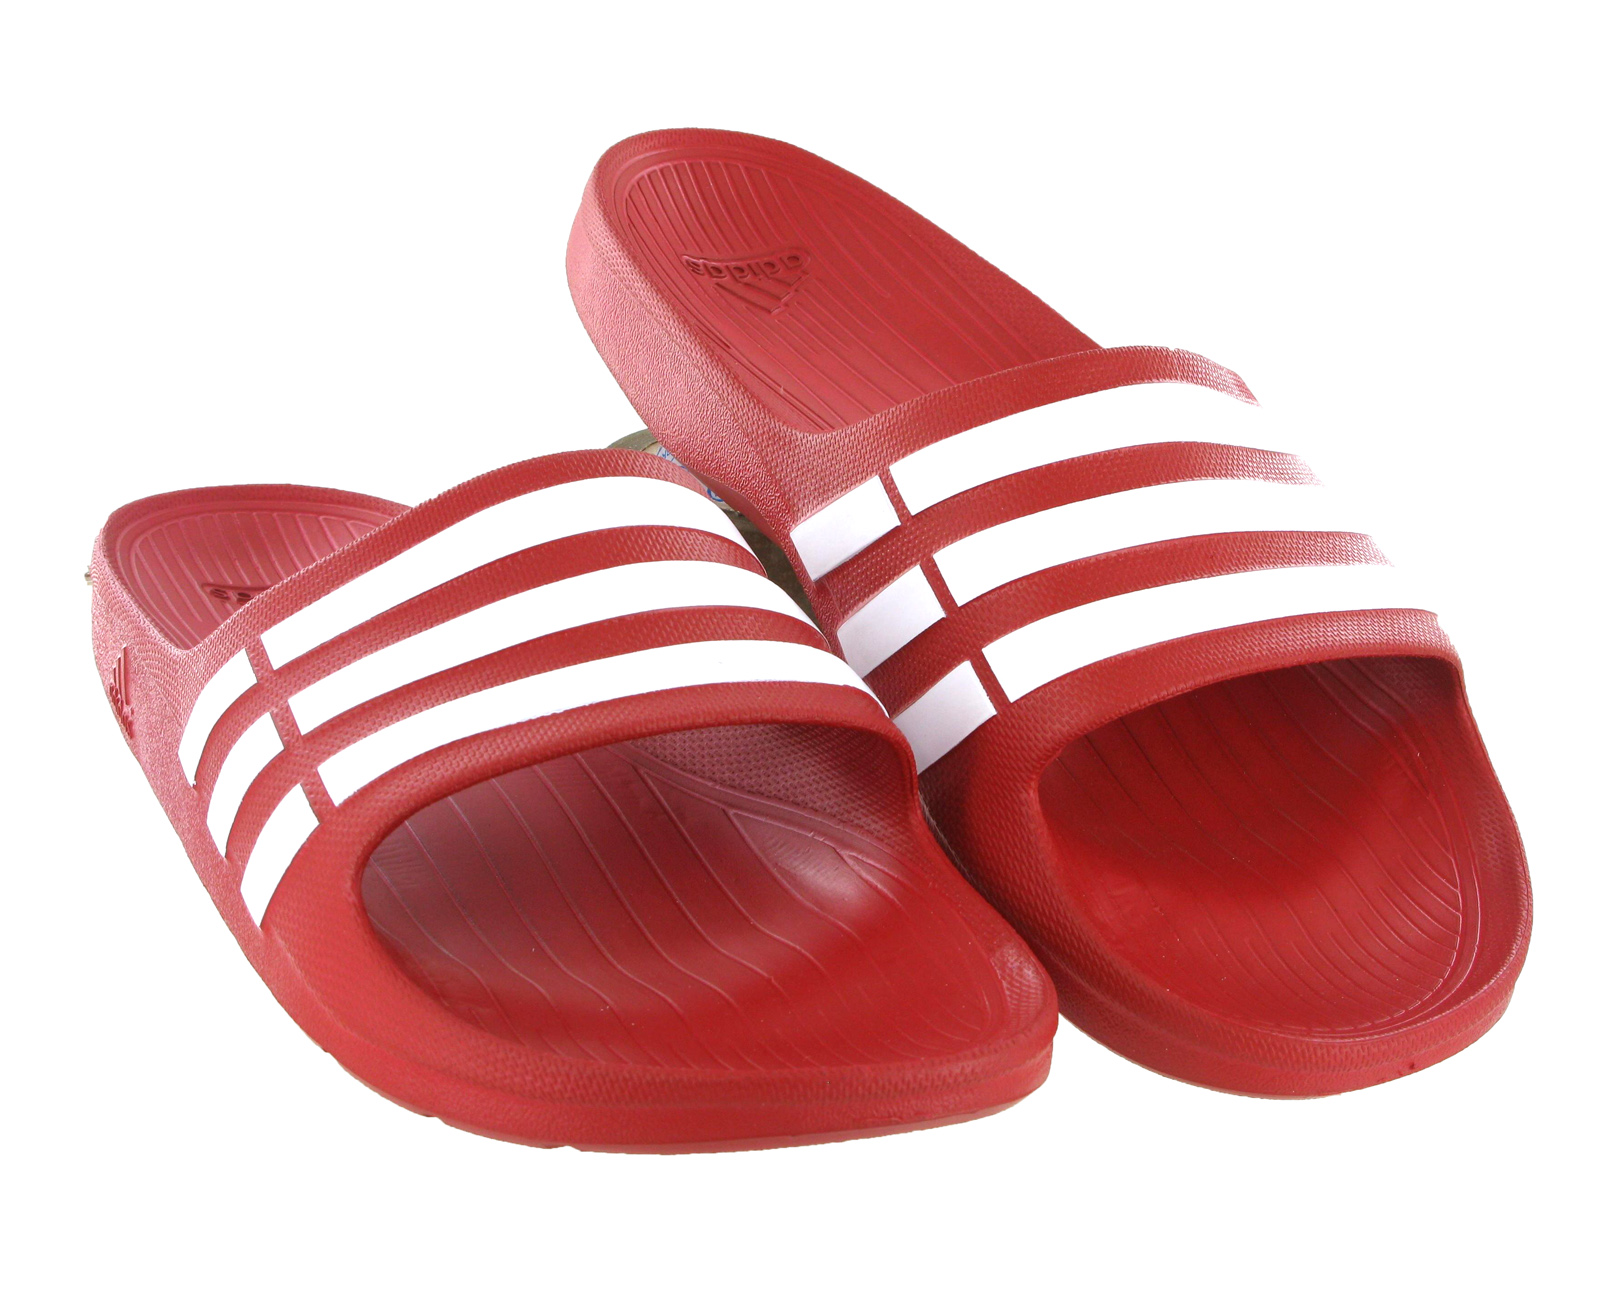 20cb5d320d8 adidas red sandals on sale   OFF45% Discounts